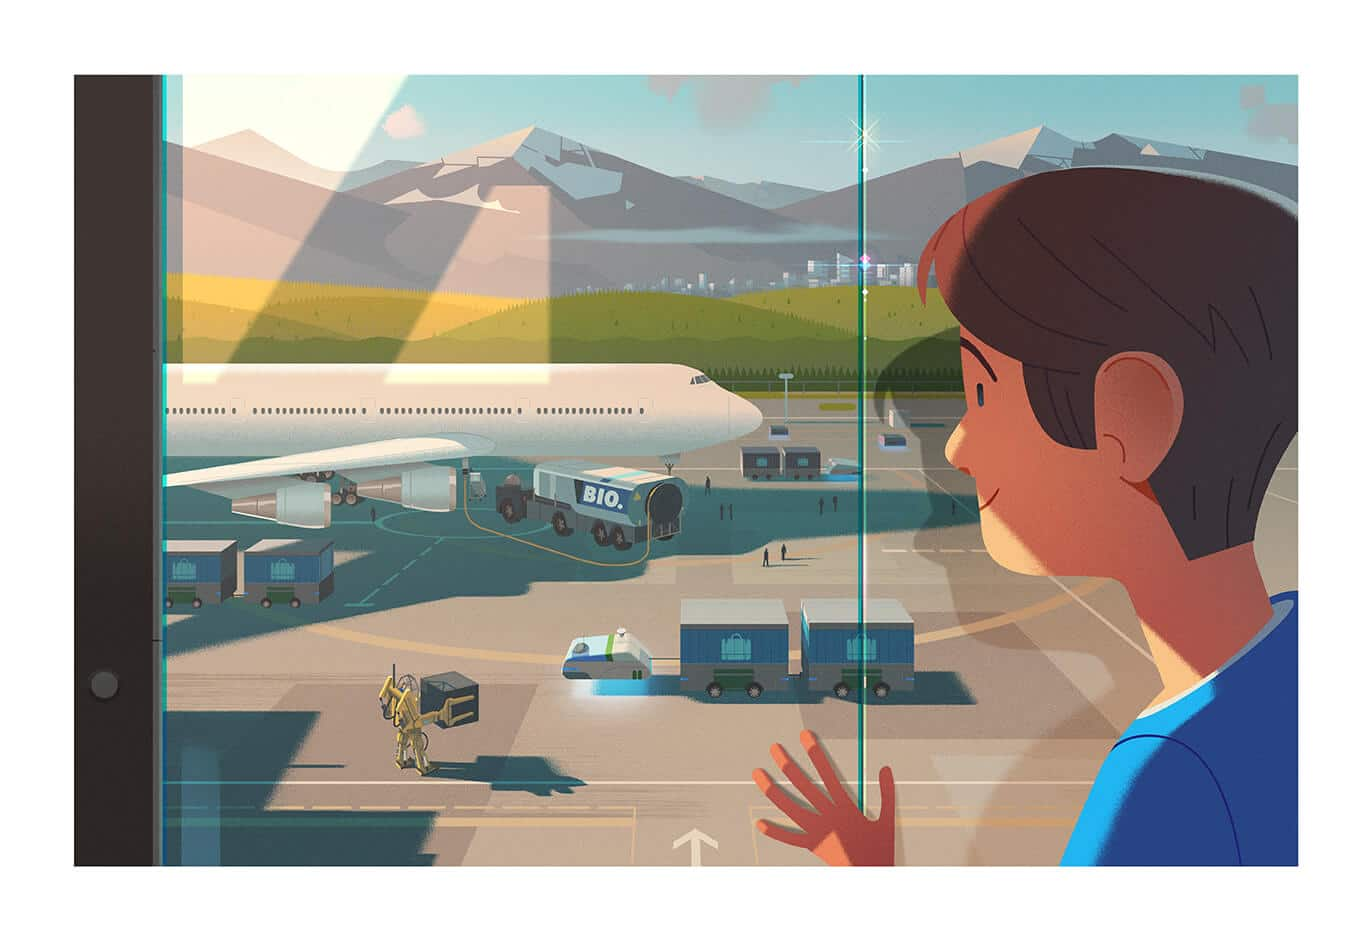 YVR 2037: The Future of Family Reunions